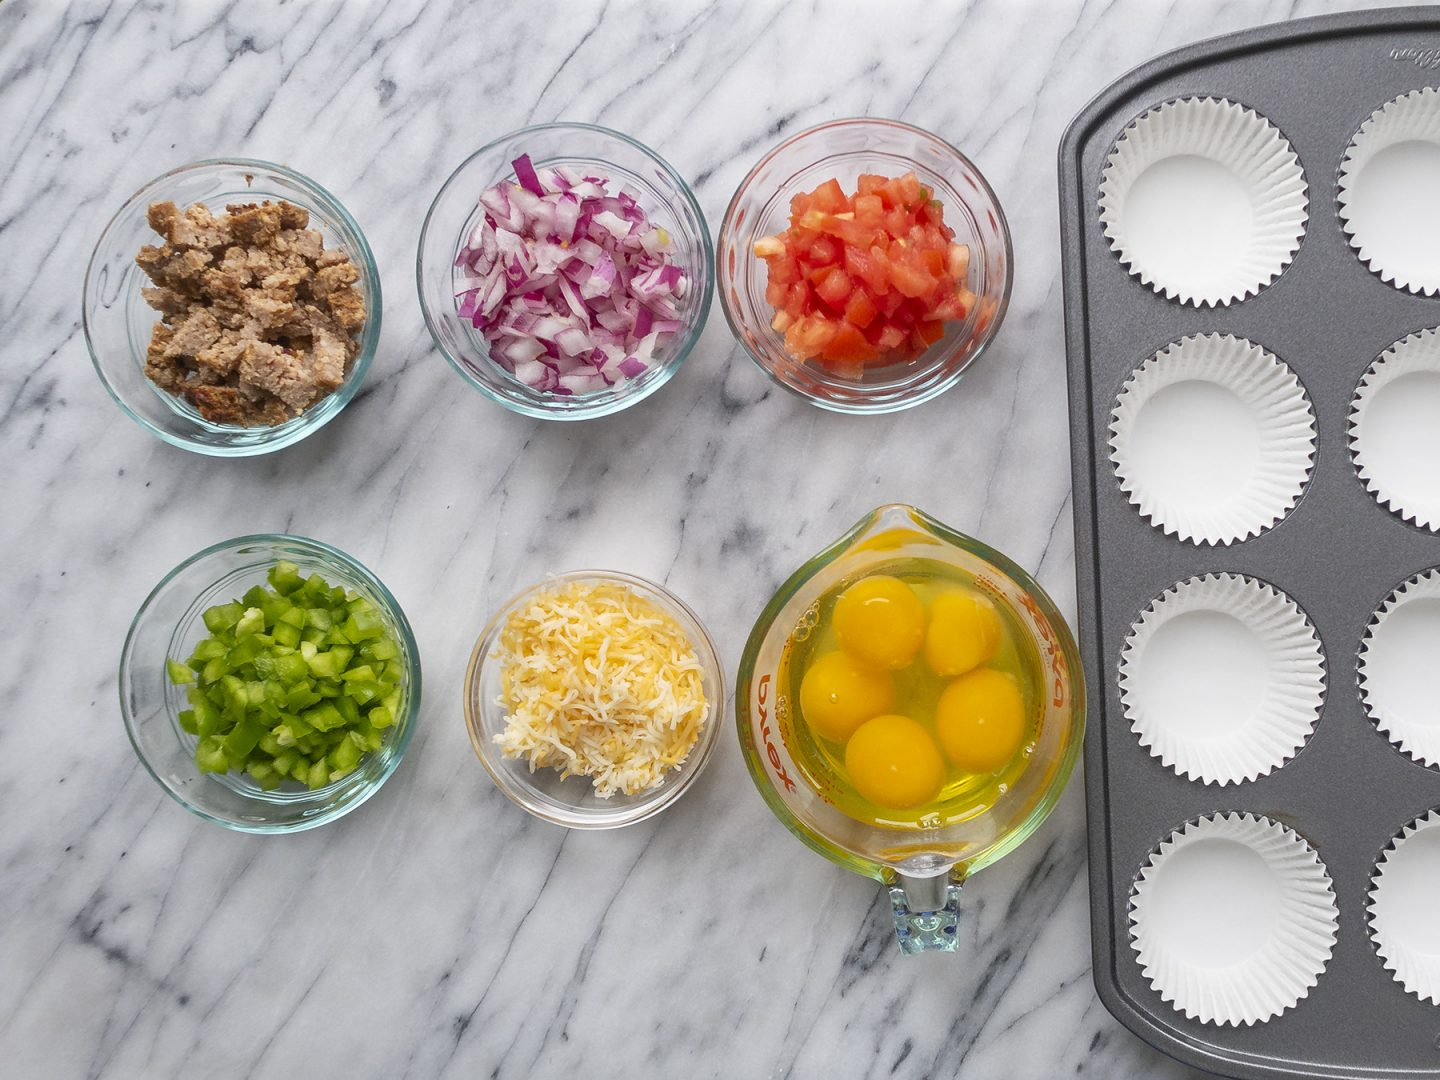 Ingredients to make sausage, veggies and cheese breakfast egg muffins